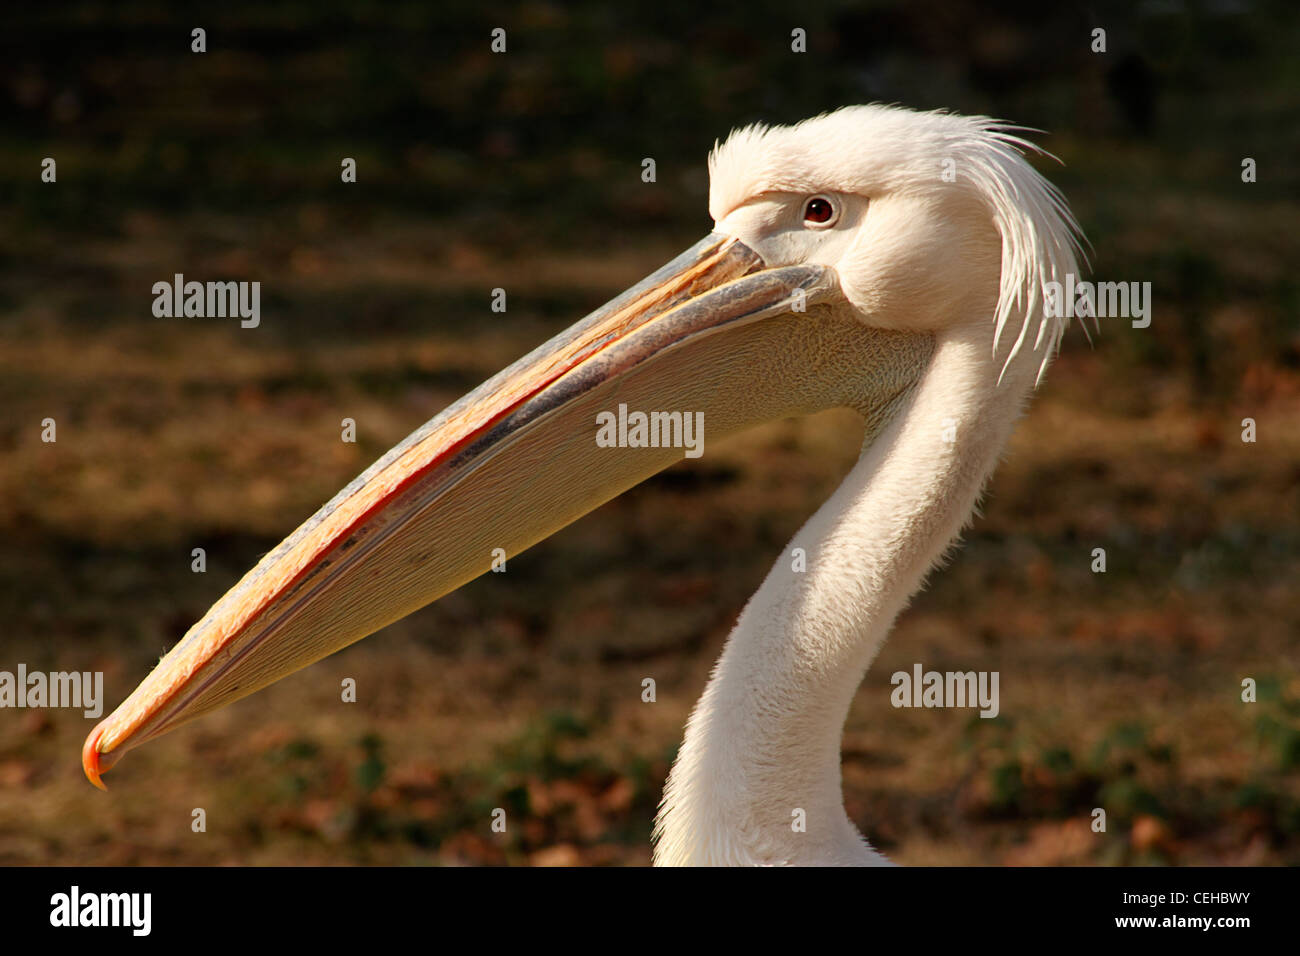 Great White Pelican, (Pelecanus onocrotalus) St James's Park, London, UK - Stock Image